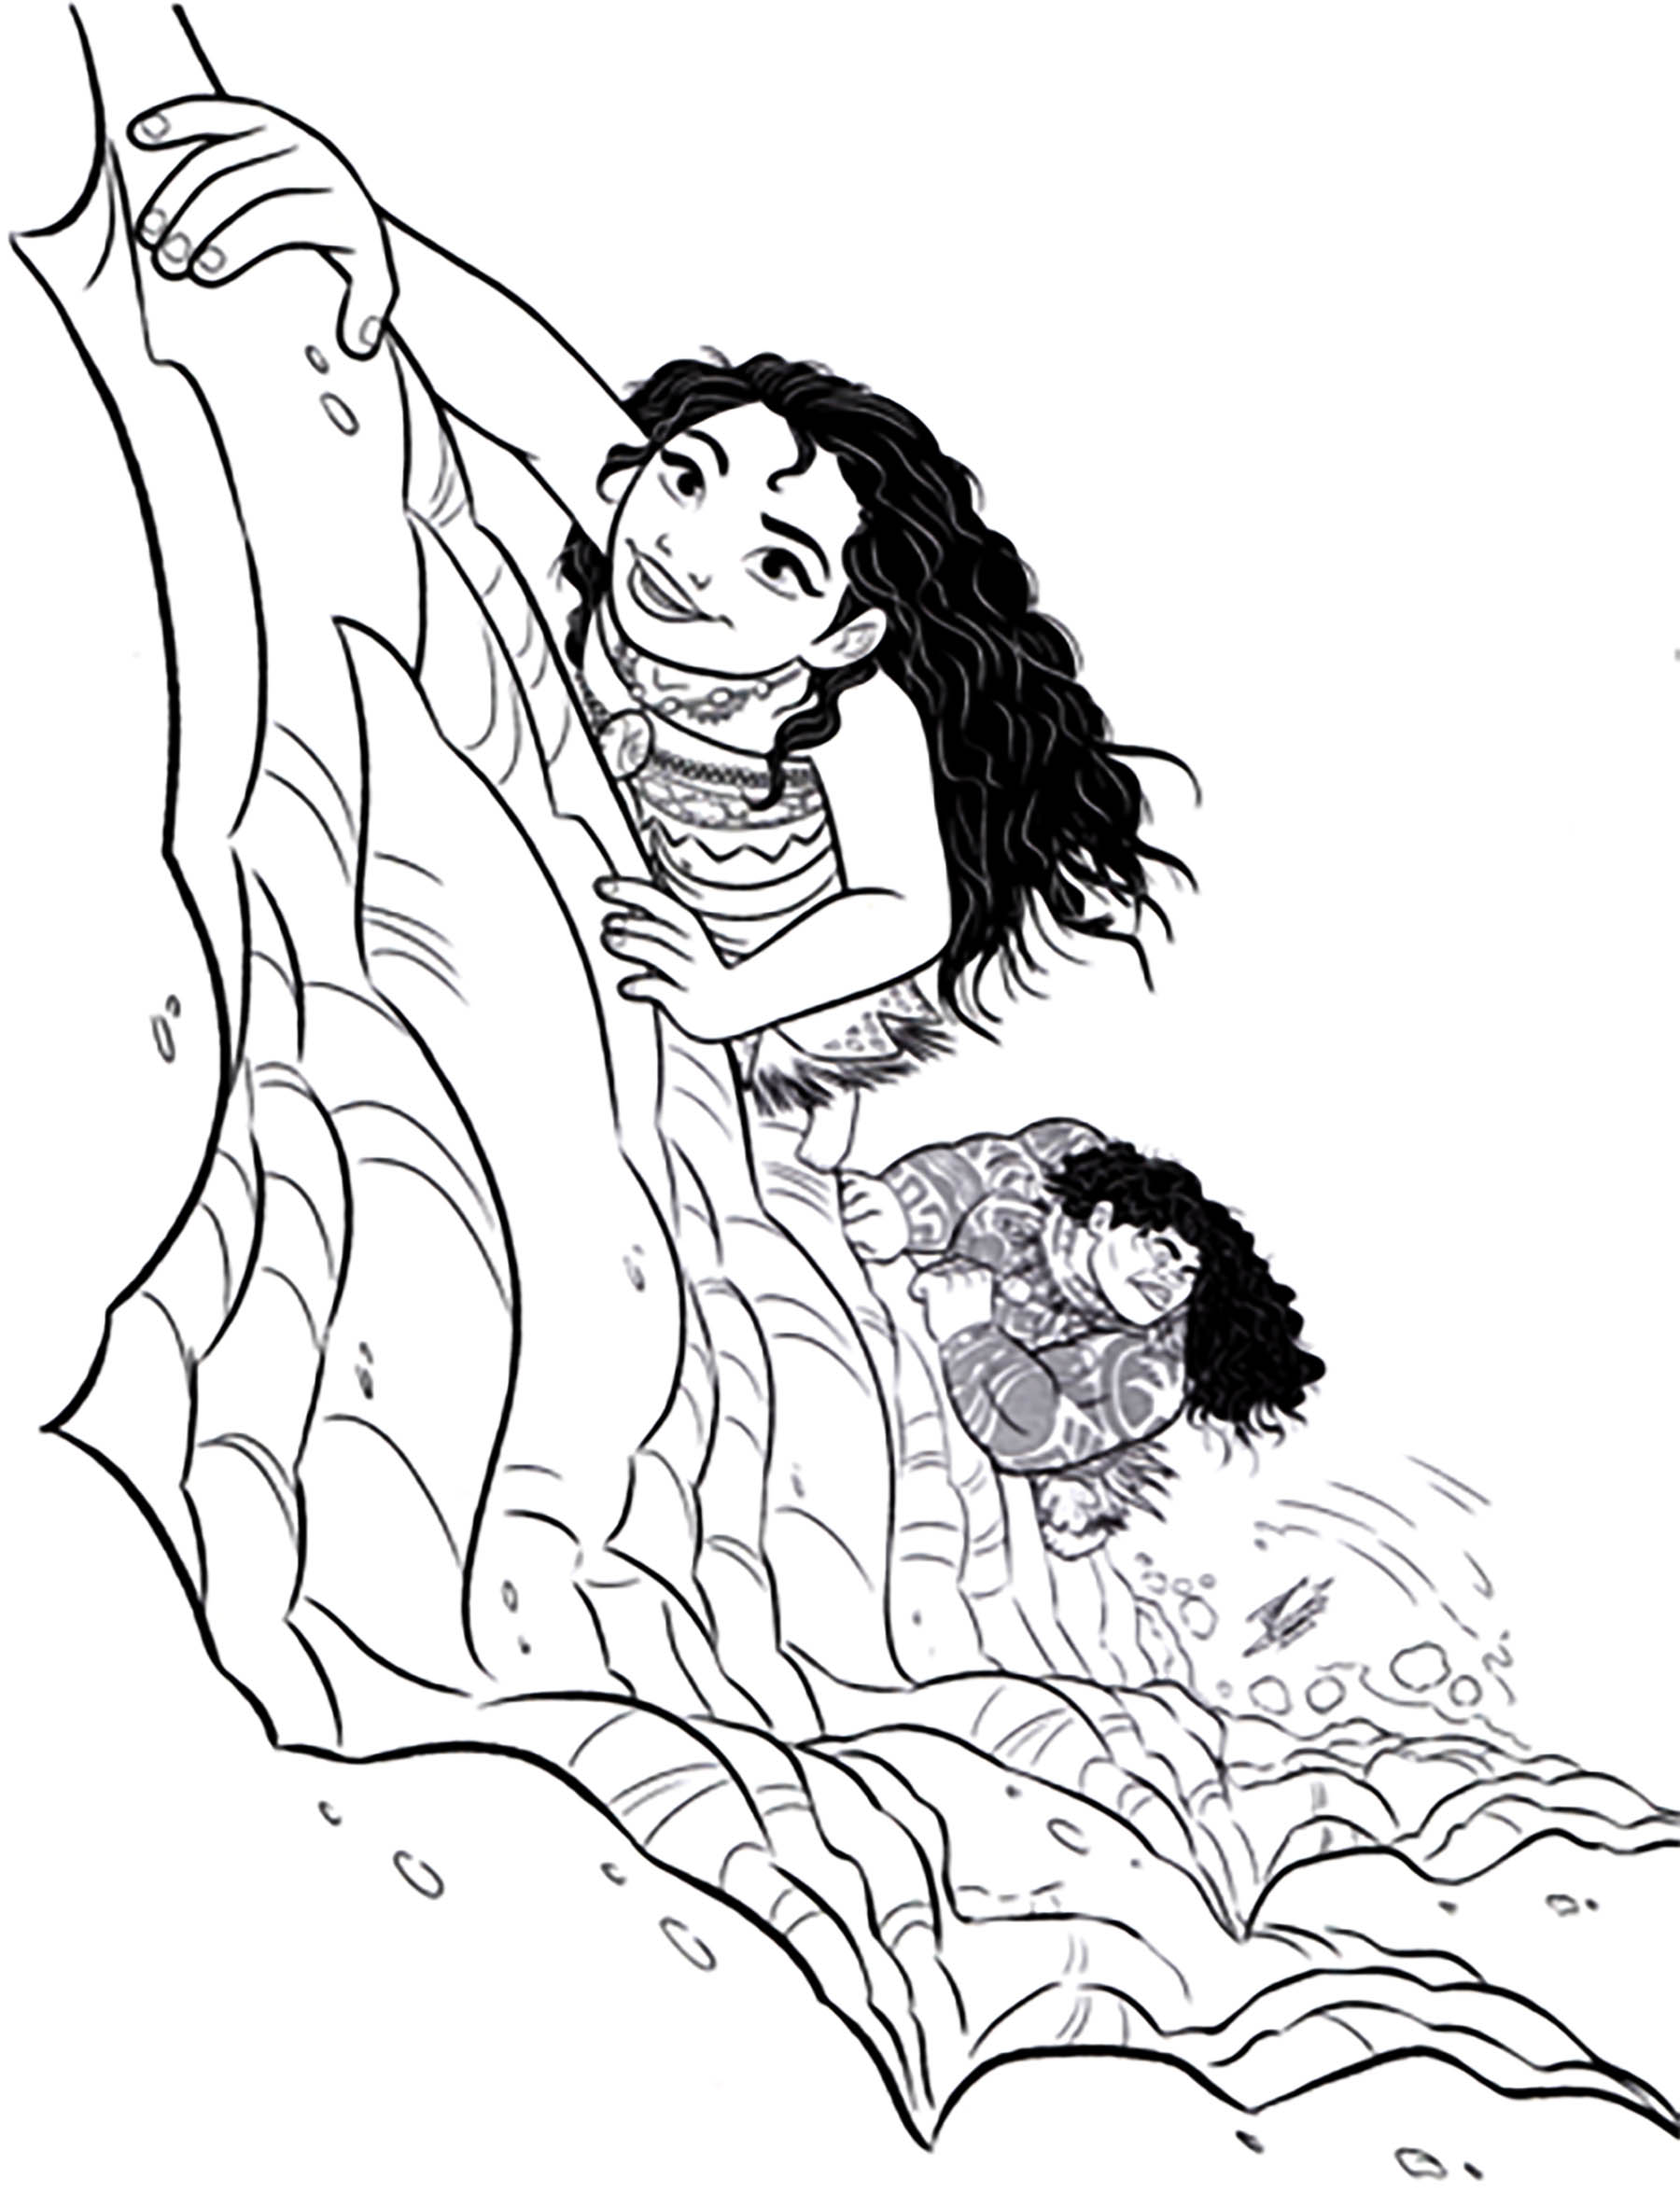 Simple Moana coloring page for kids : Chief Tui and Moana